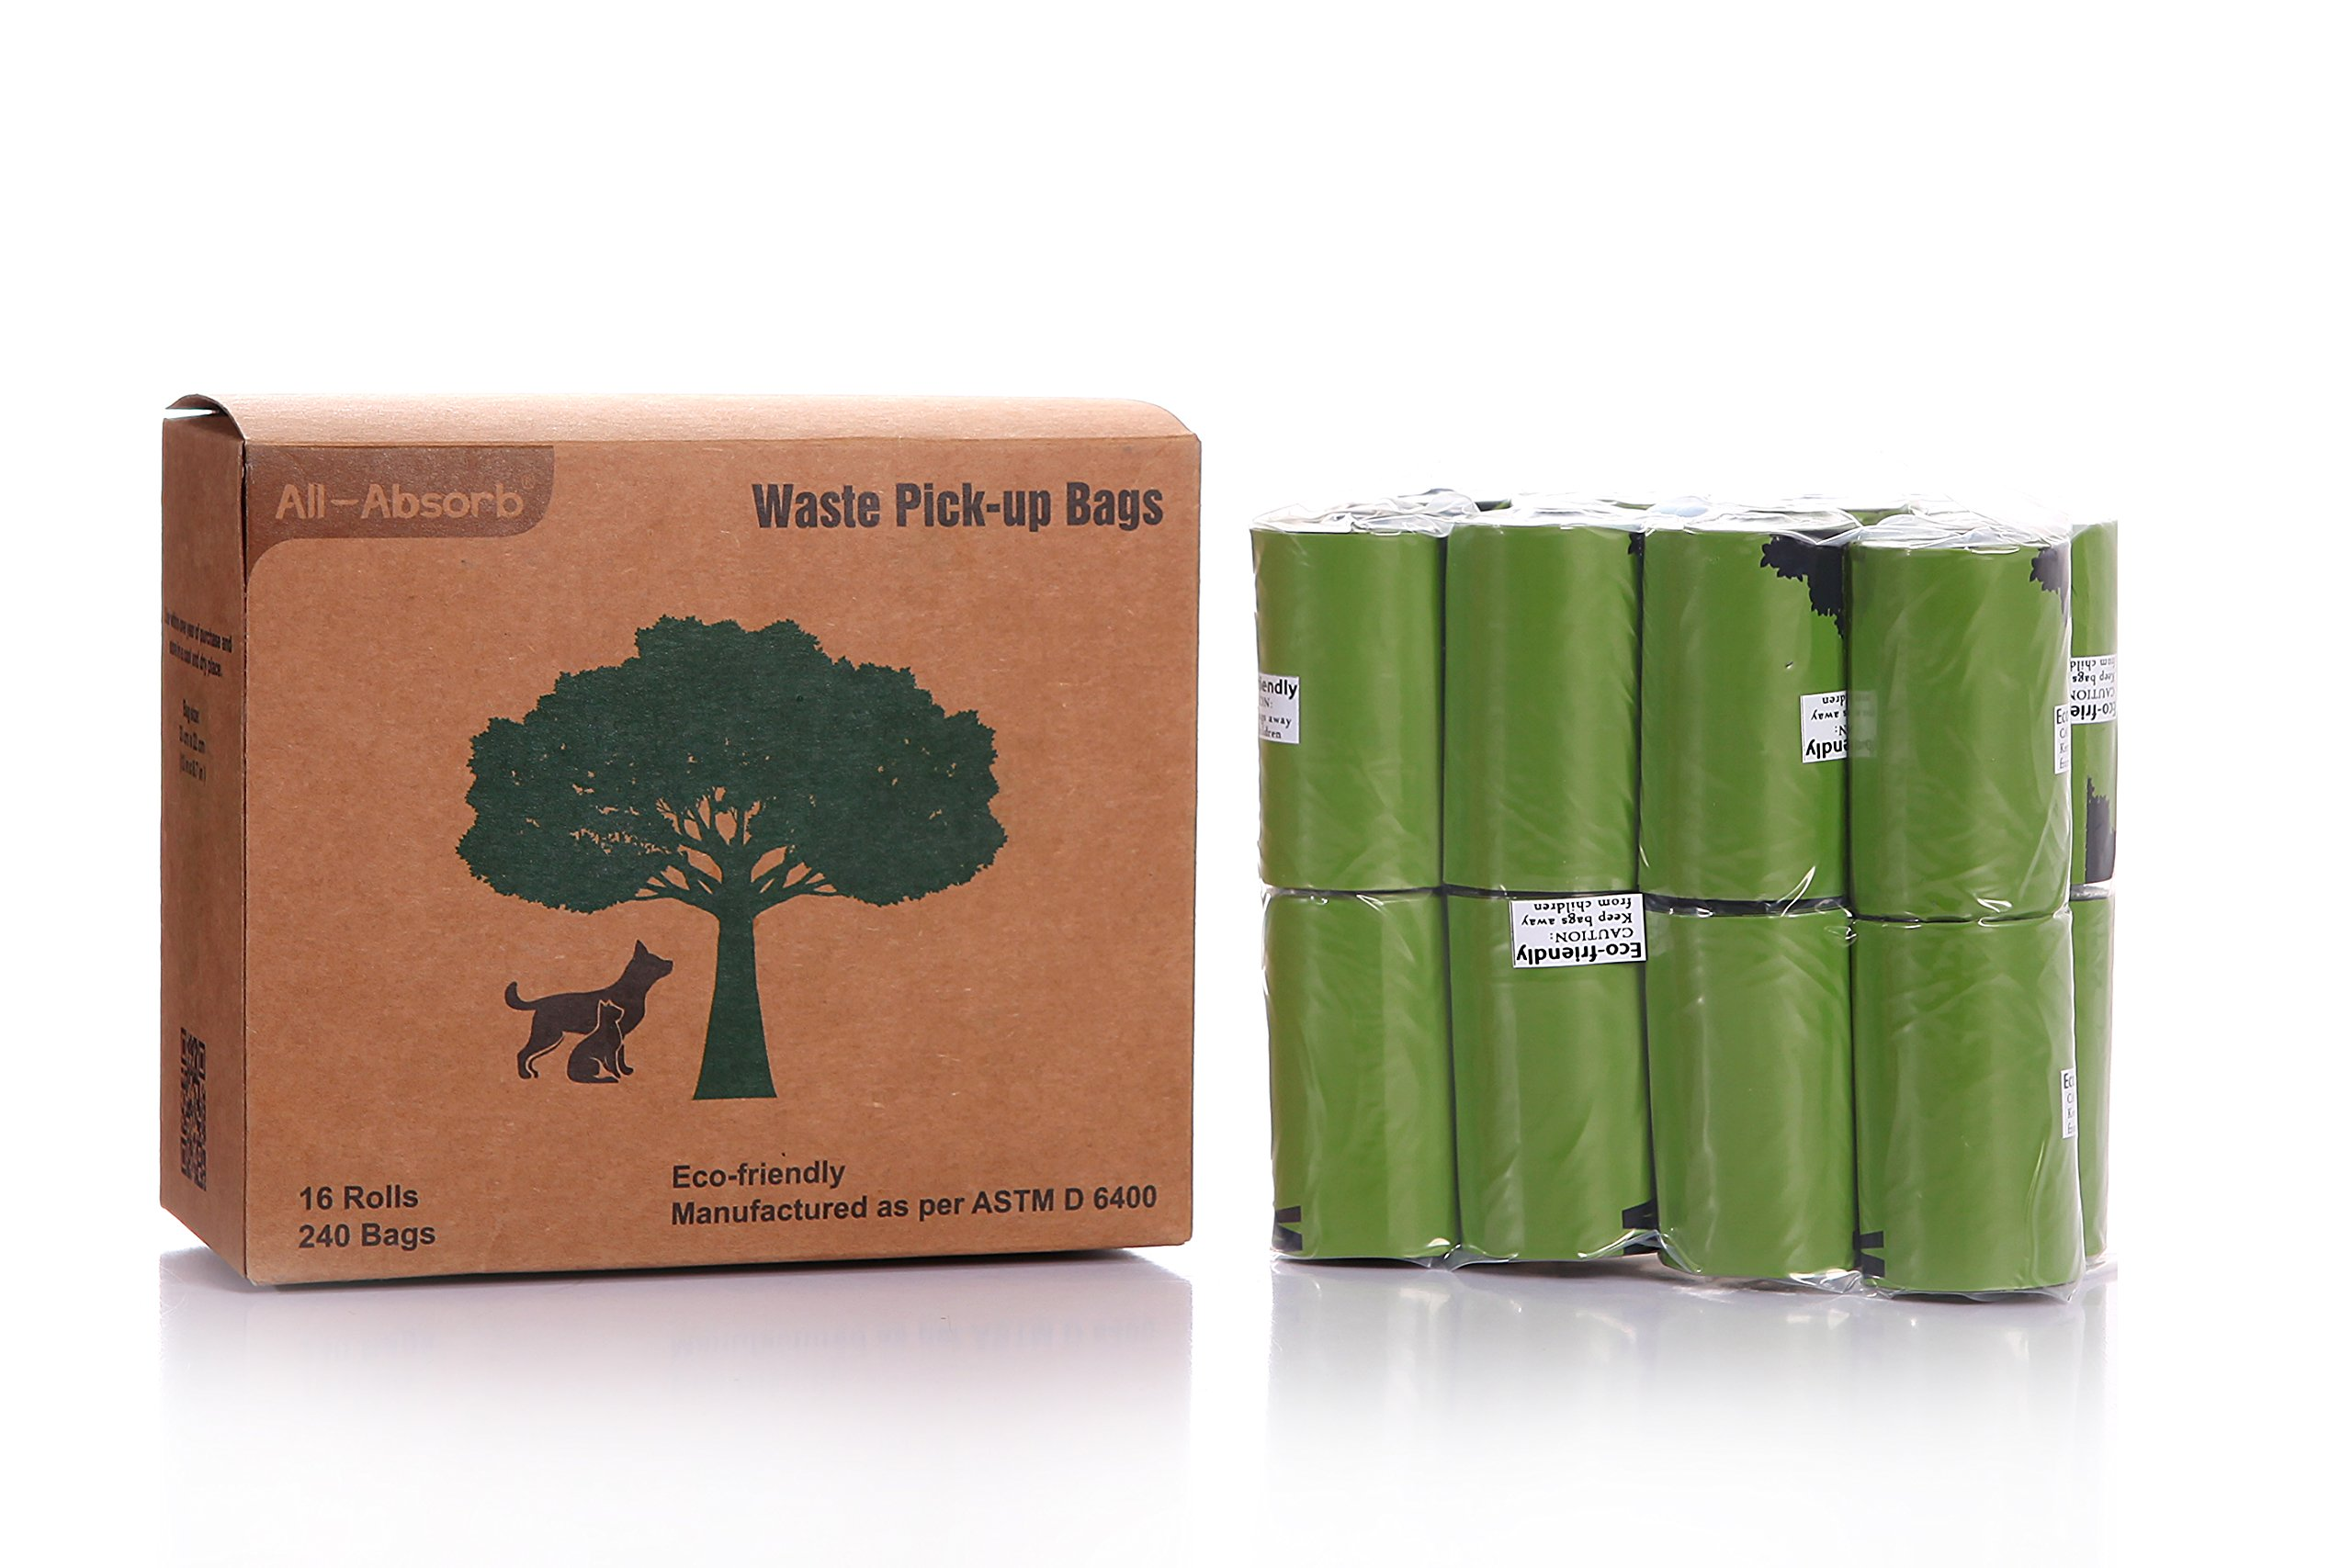 All-Absorb Eco-friendly Waste Pick-up Bags, 240 count